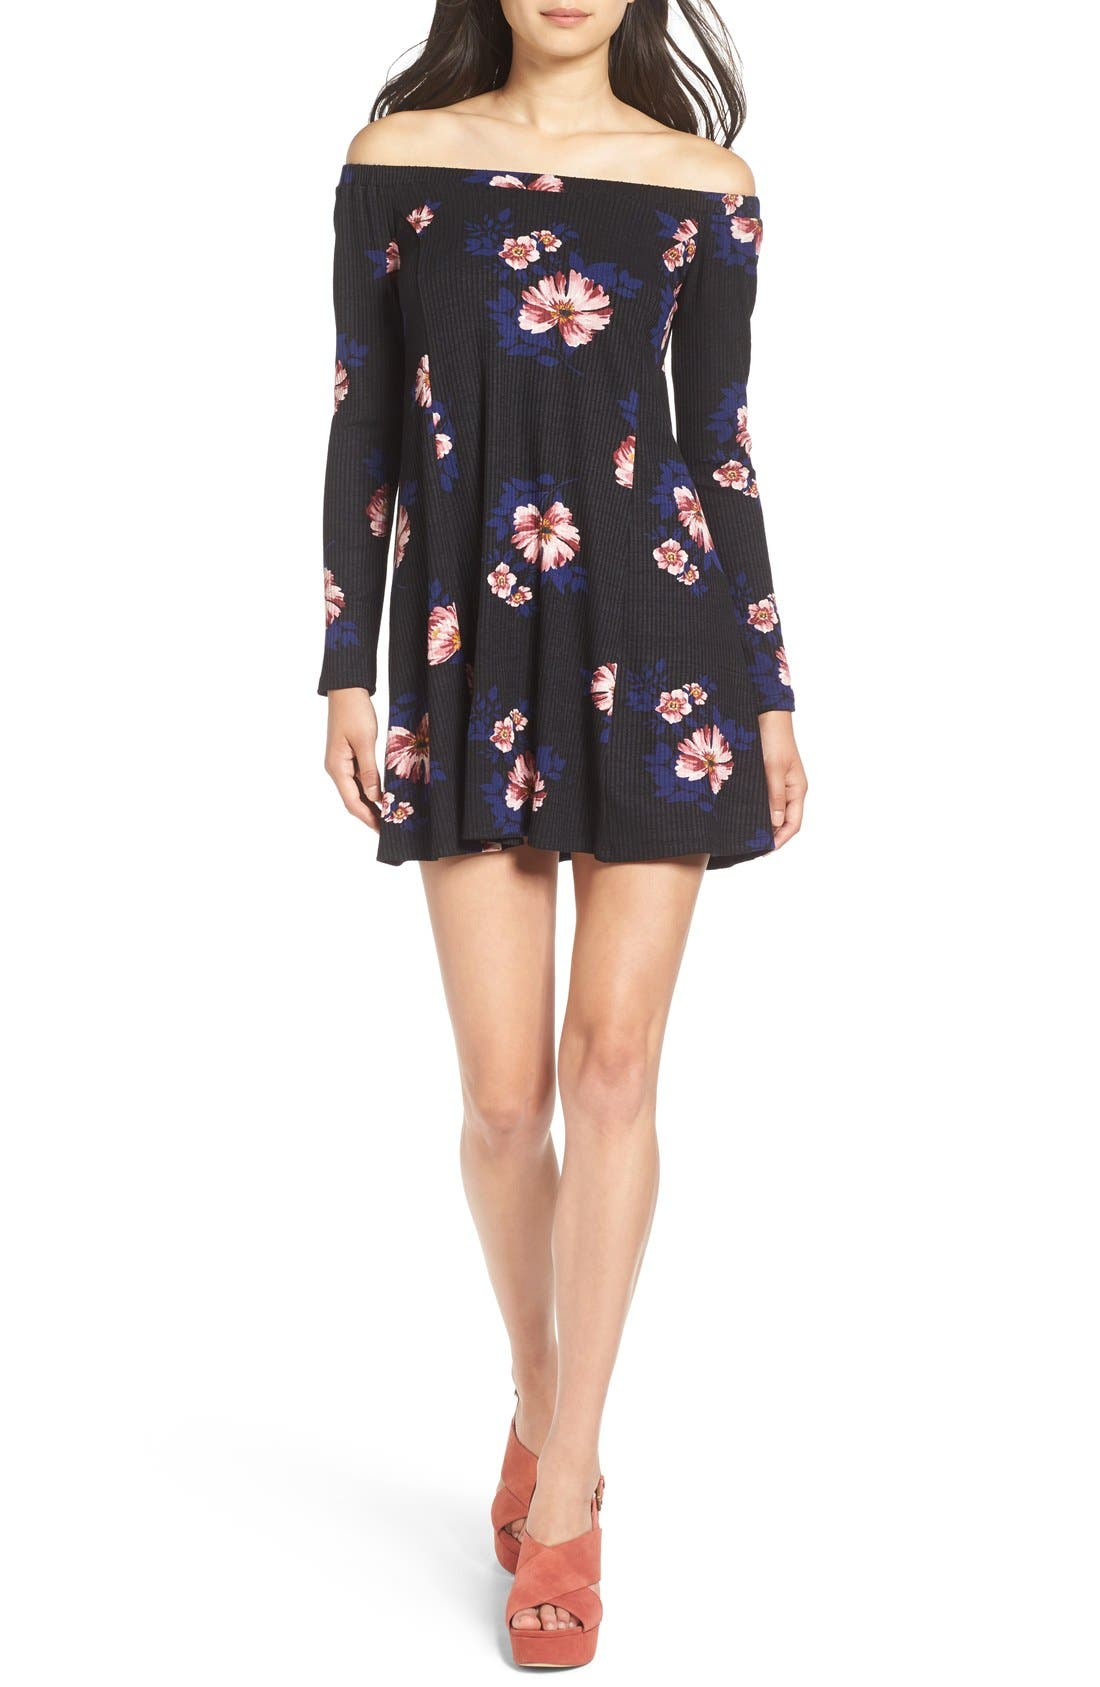 Main Image - Lush Off the Shoulder Floral Print Dress